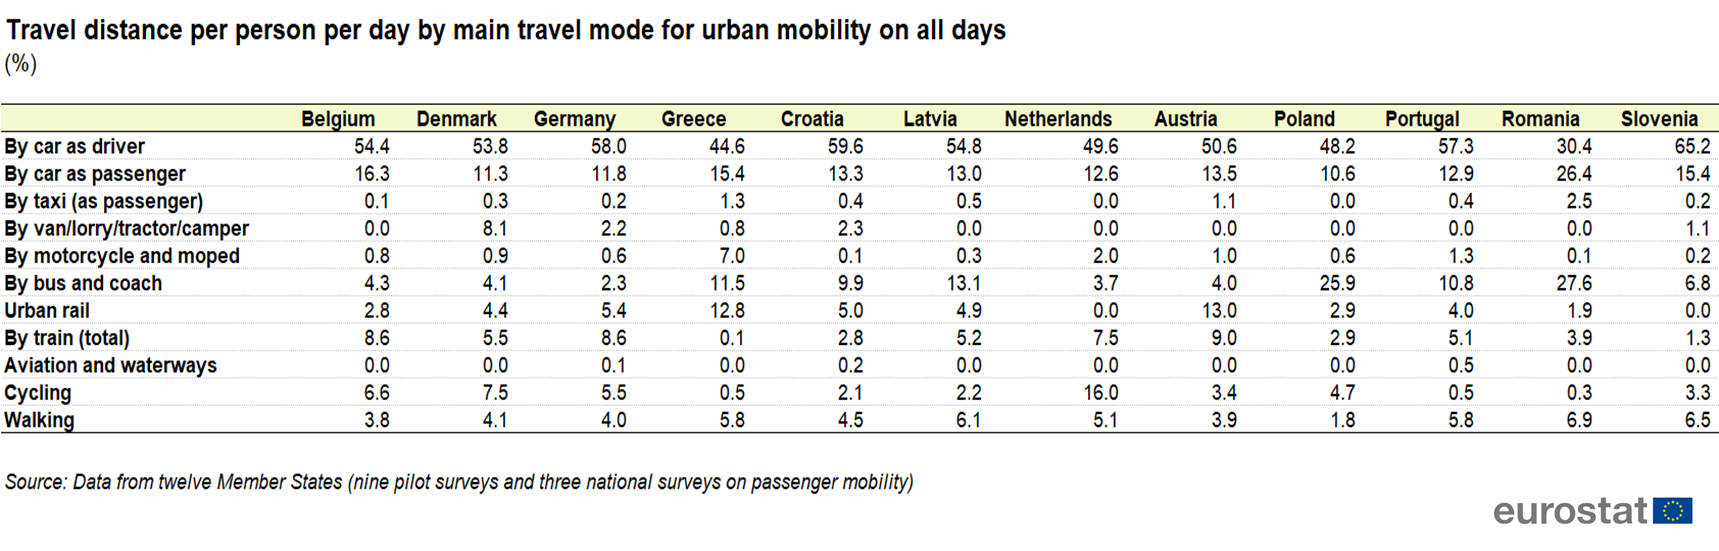 Travel_distance_per_person_per_day_by_main_travel_mode_for_urban_mobility_on_all_days_%28%25%29_Feb_2021.png